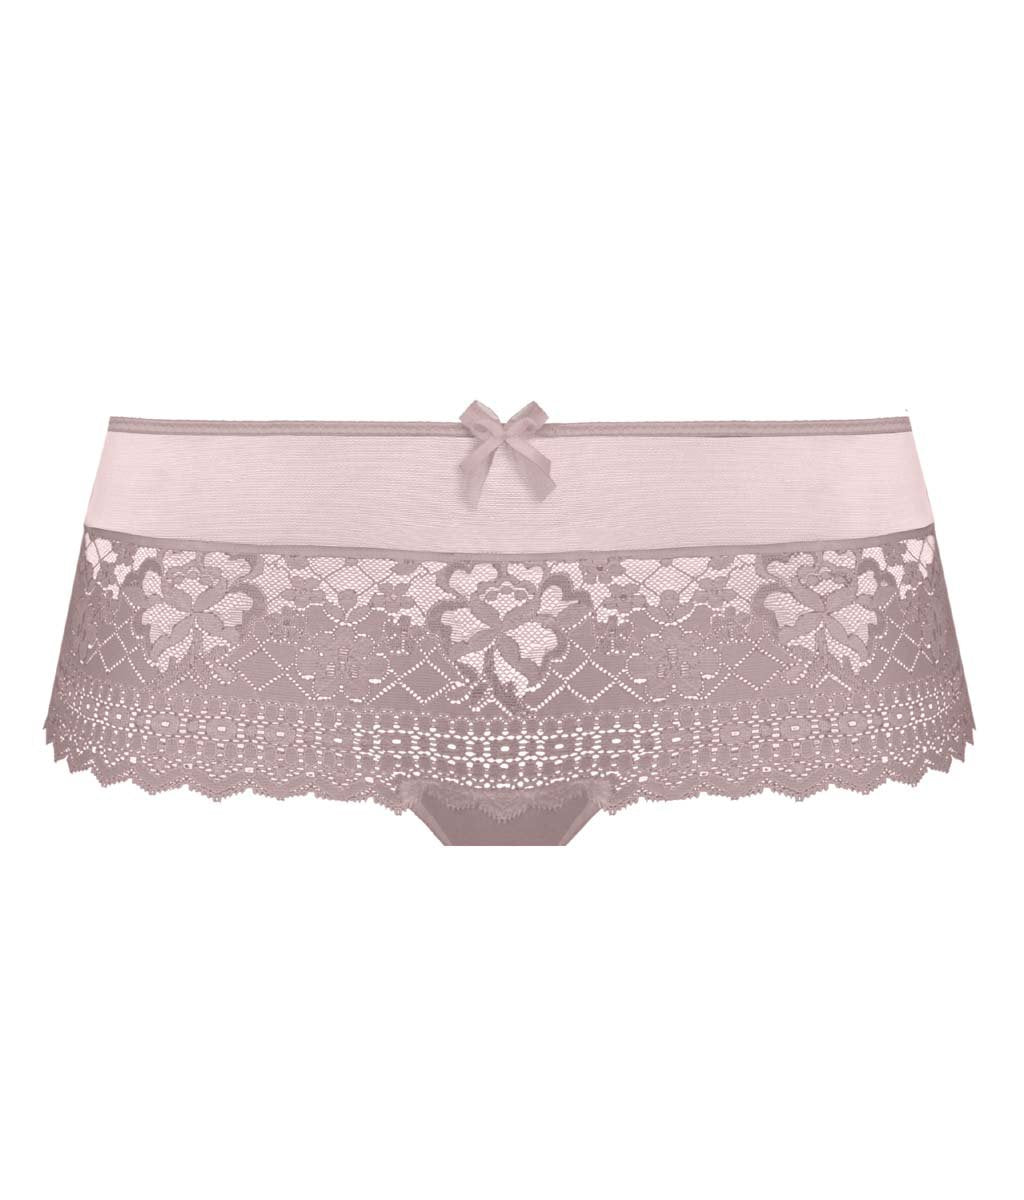 Empreinte 'Melody' (Rose Thé) Shorts (Hotpants) - Sandra Dee - Product Shot - Front